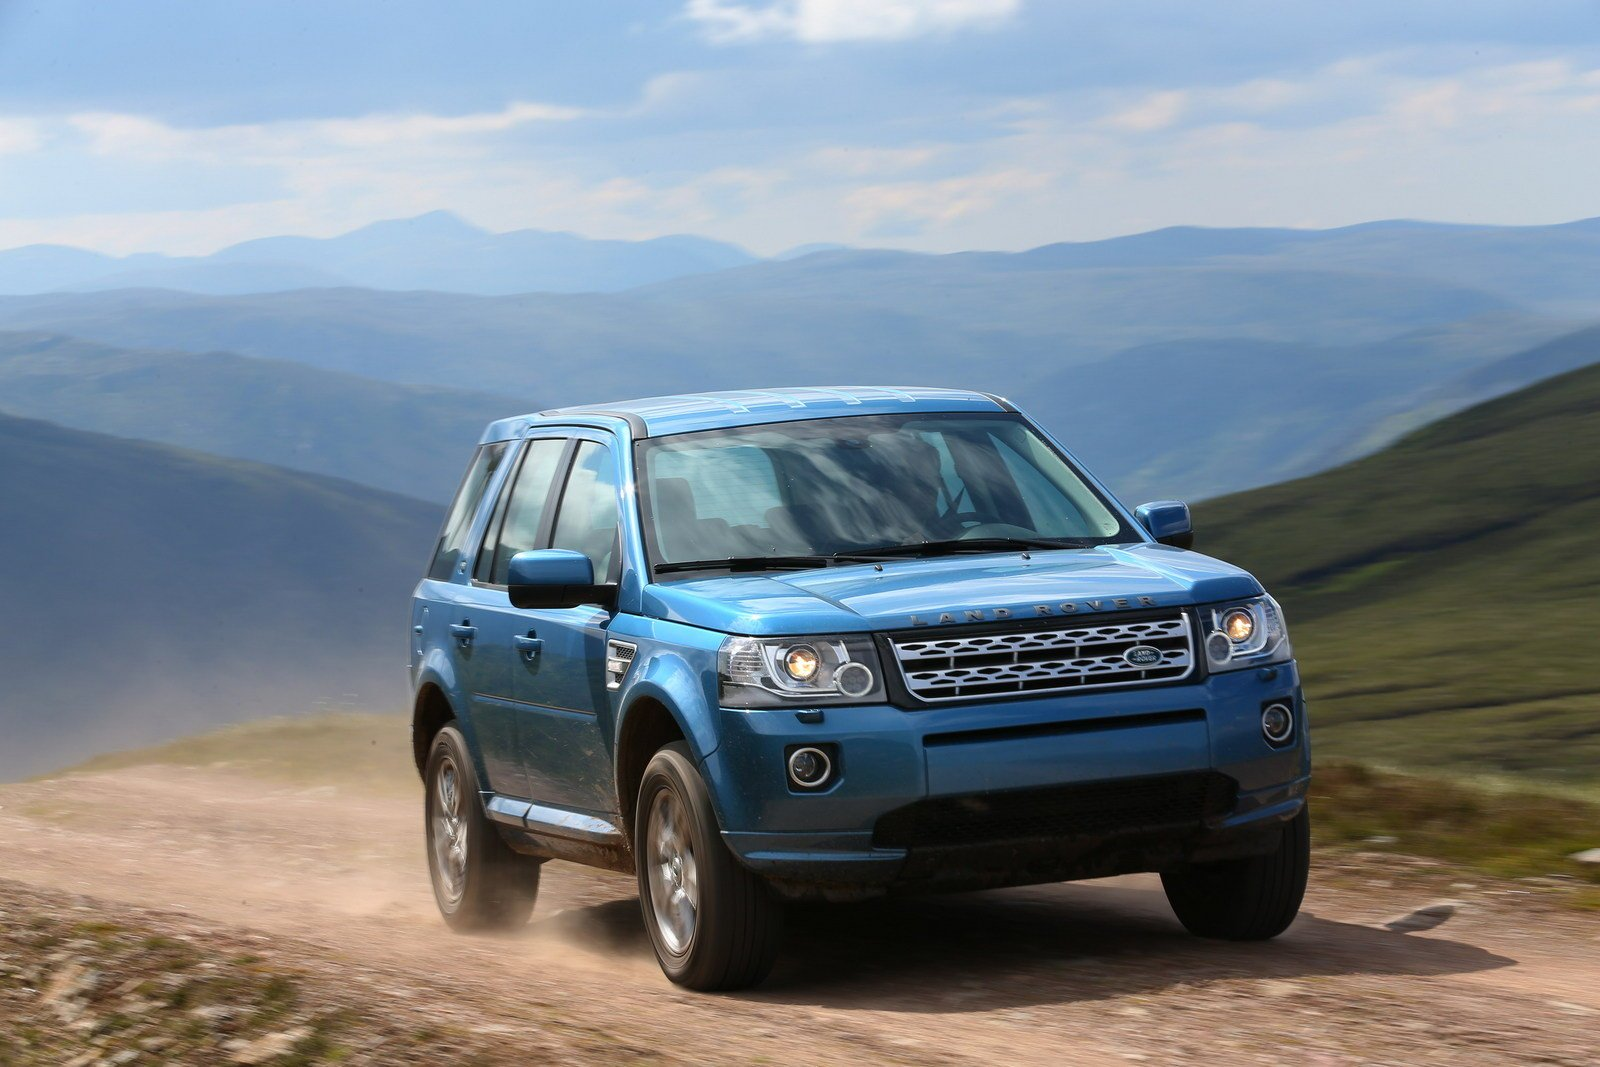 Land-Rover-Freelander-2-2013-Water-in-Fuel-Detection-Reset-by-Launch-X431-1